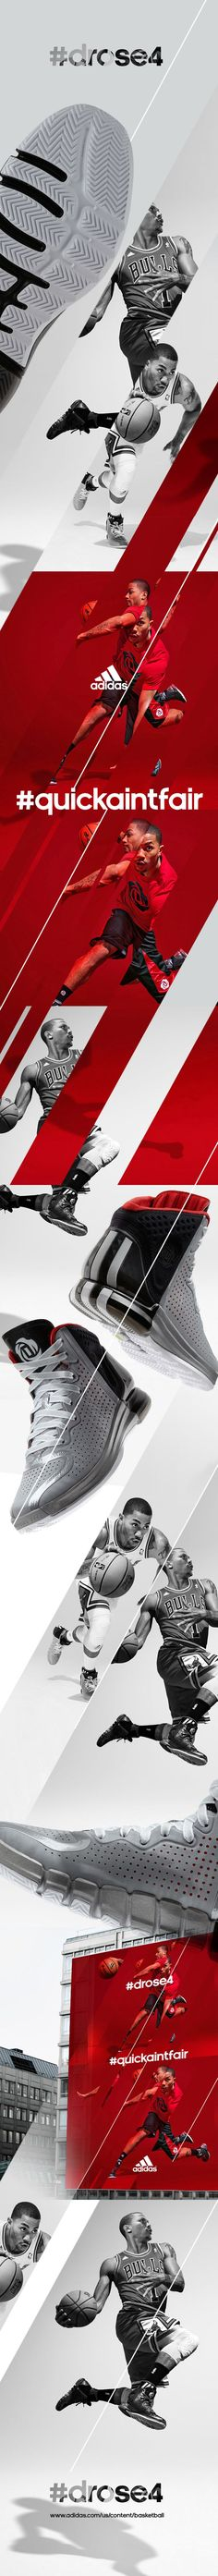 Adidas Drose4 by Julio Ferreira, via Behance